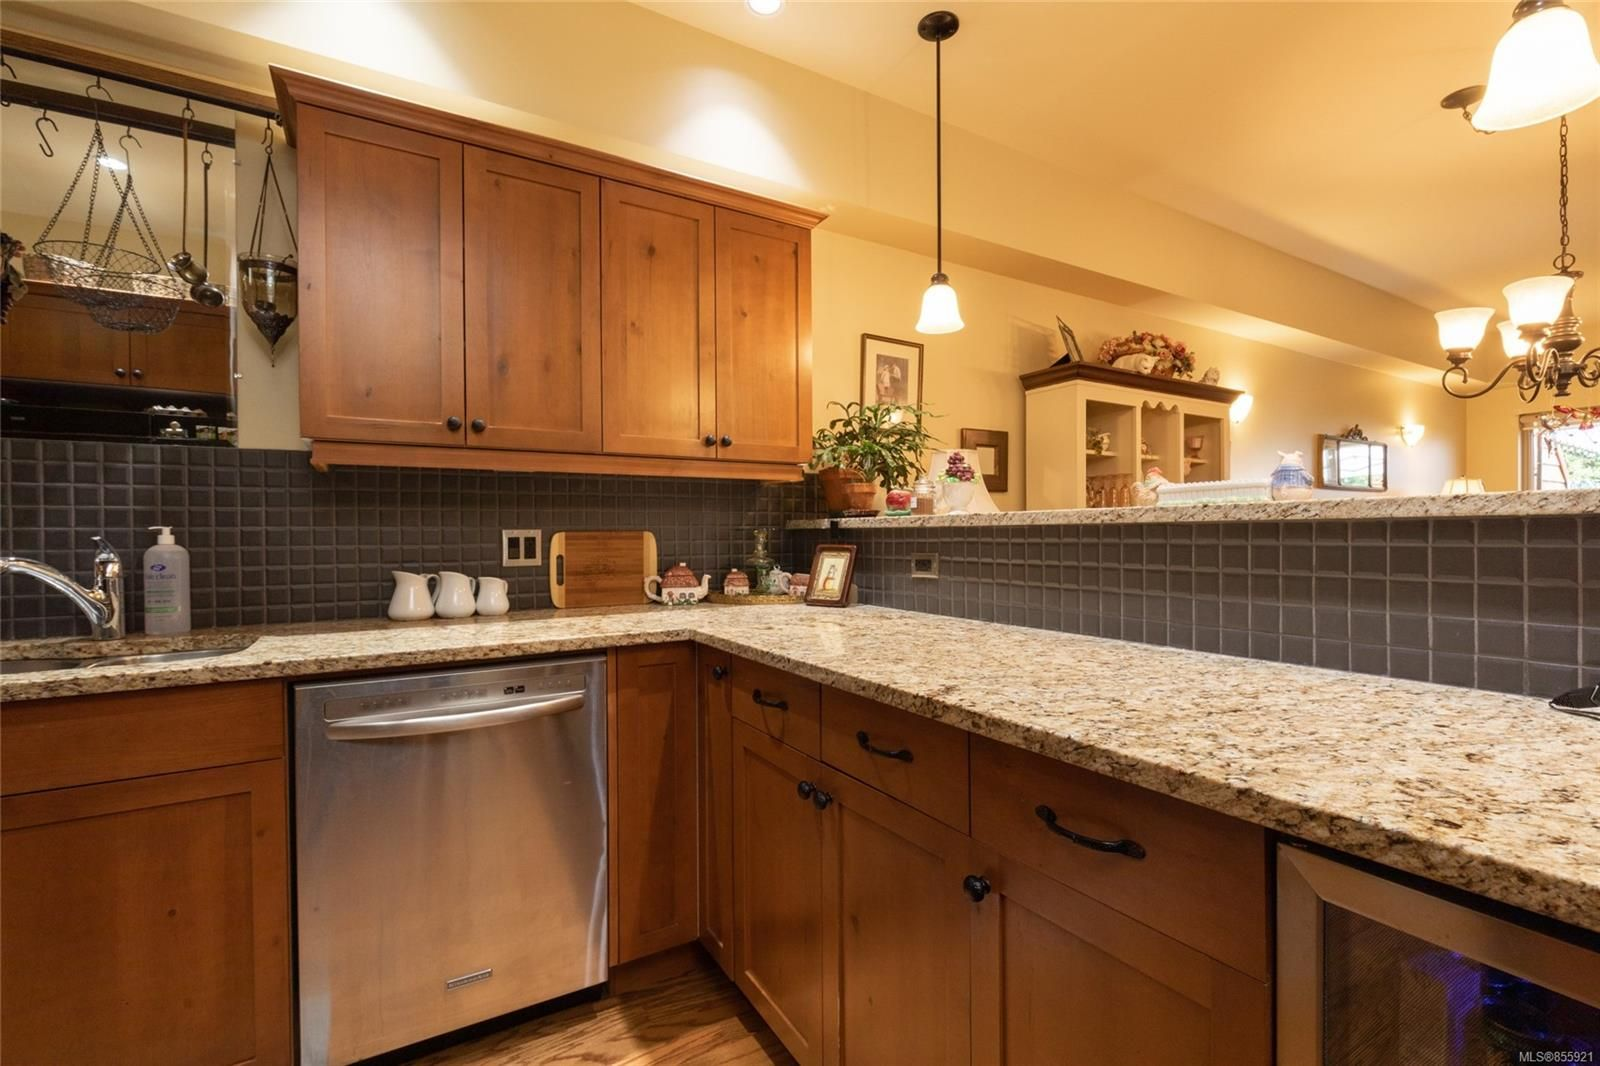 Photo 8: Photos: 206 1244 4TH Ave in : Du Ladysmith Row/Townhouse for sale (Duncan)  : MLS®# 855921